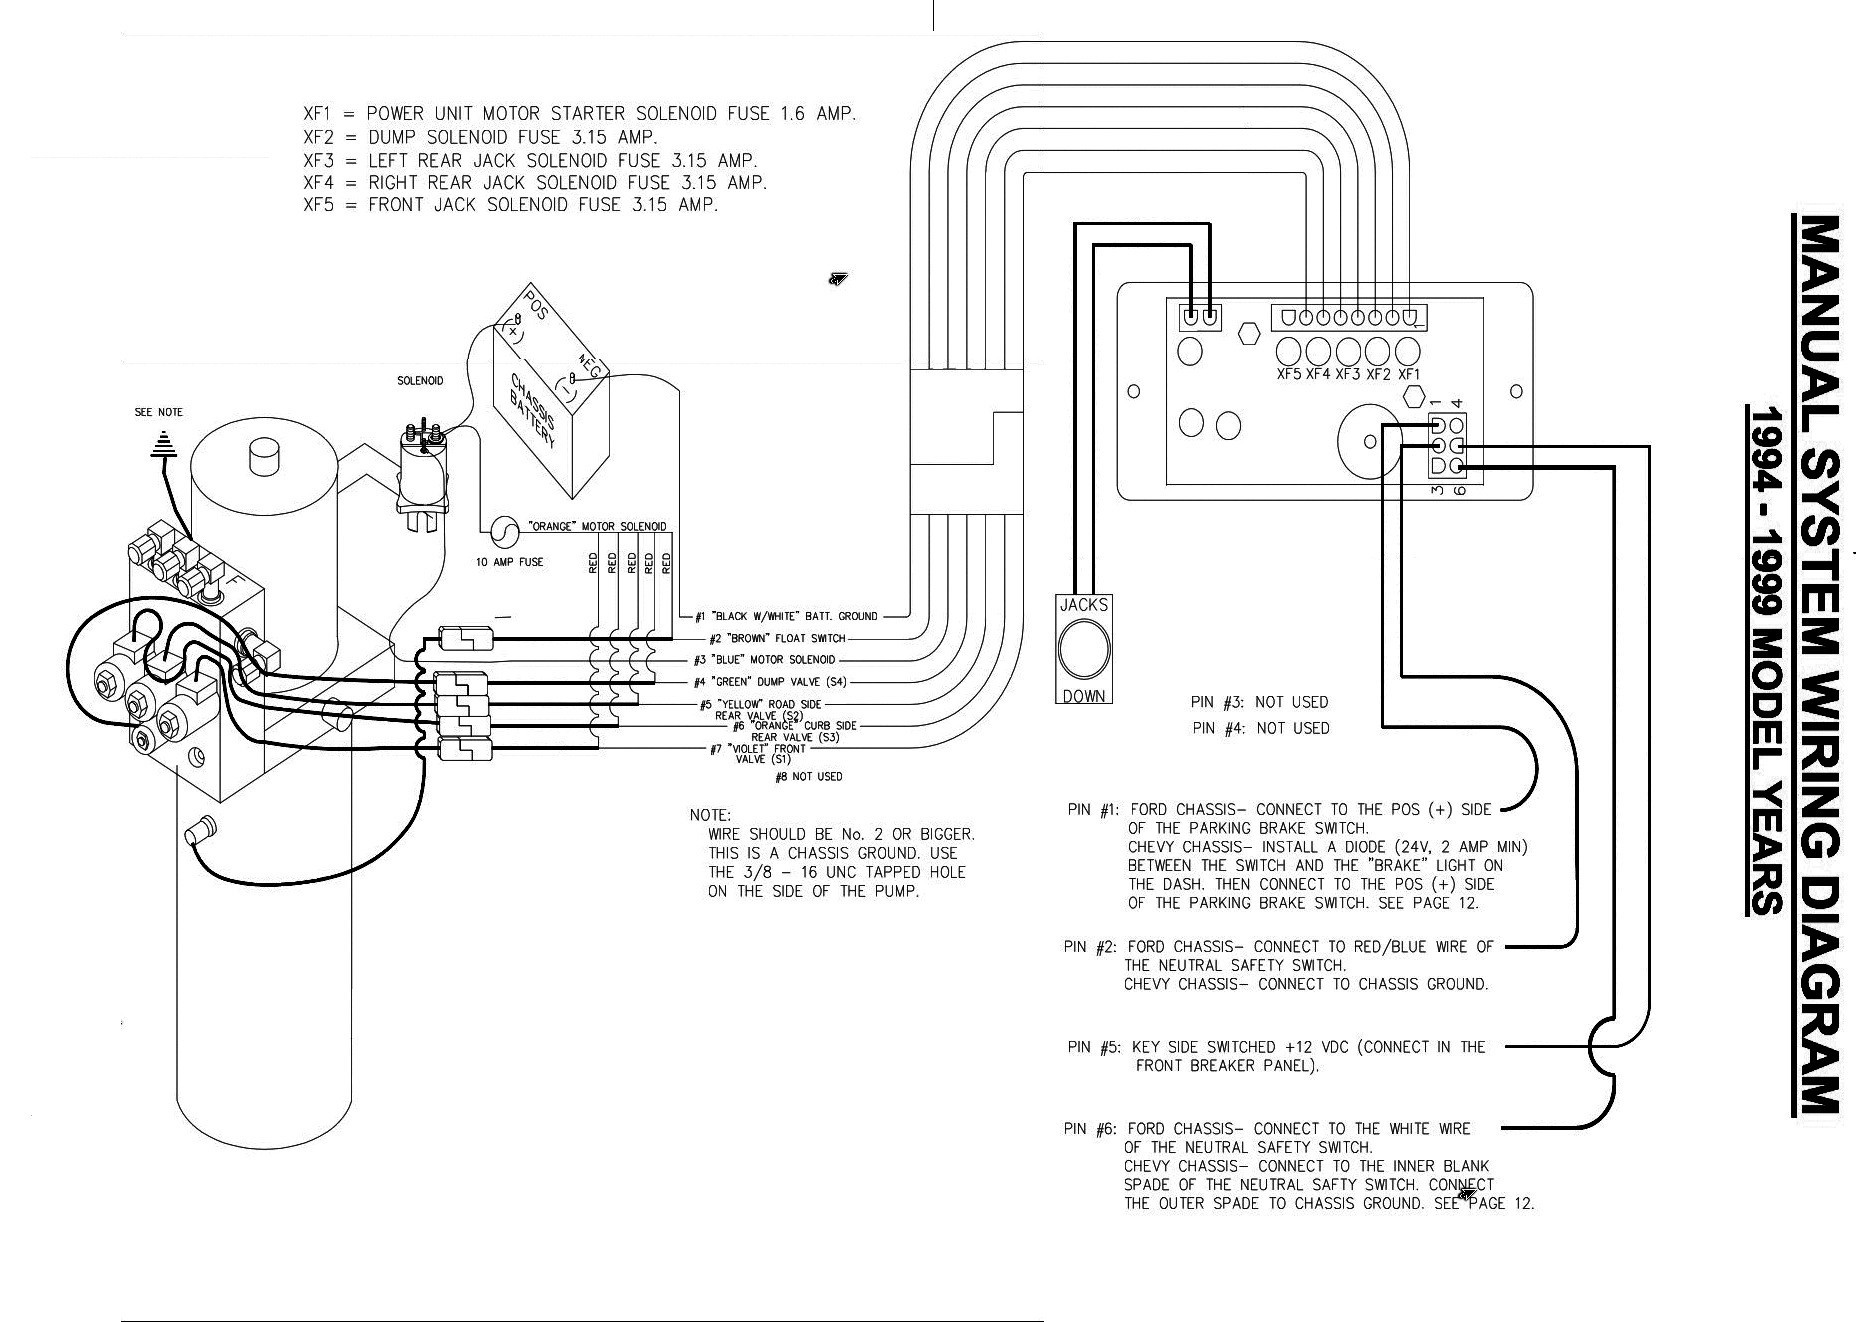 wiring diagram 1997 fleetwood southwind storm Bounder Fleetwood Motorhome Wiring Diagram for Televisions small resolution of 1989 fleetwood bounder motorhome wiring diagram complete